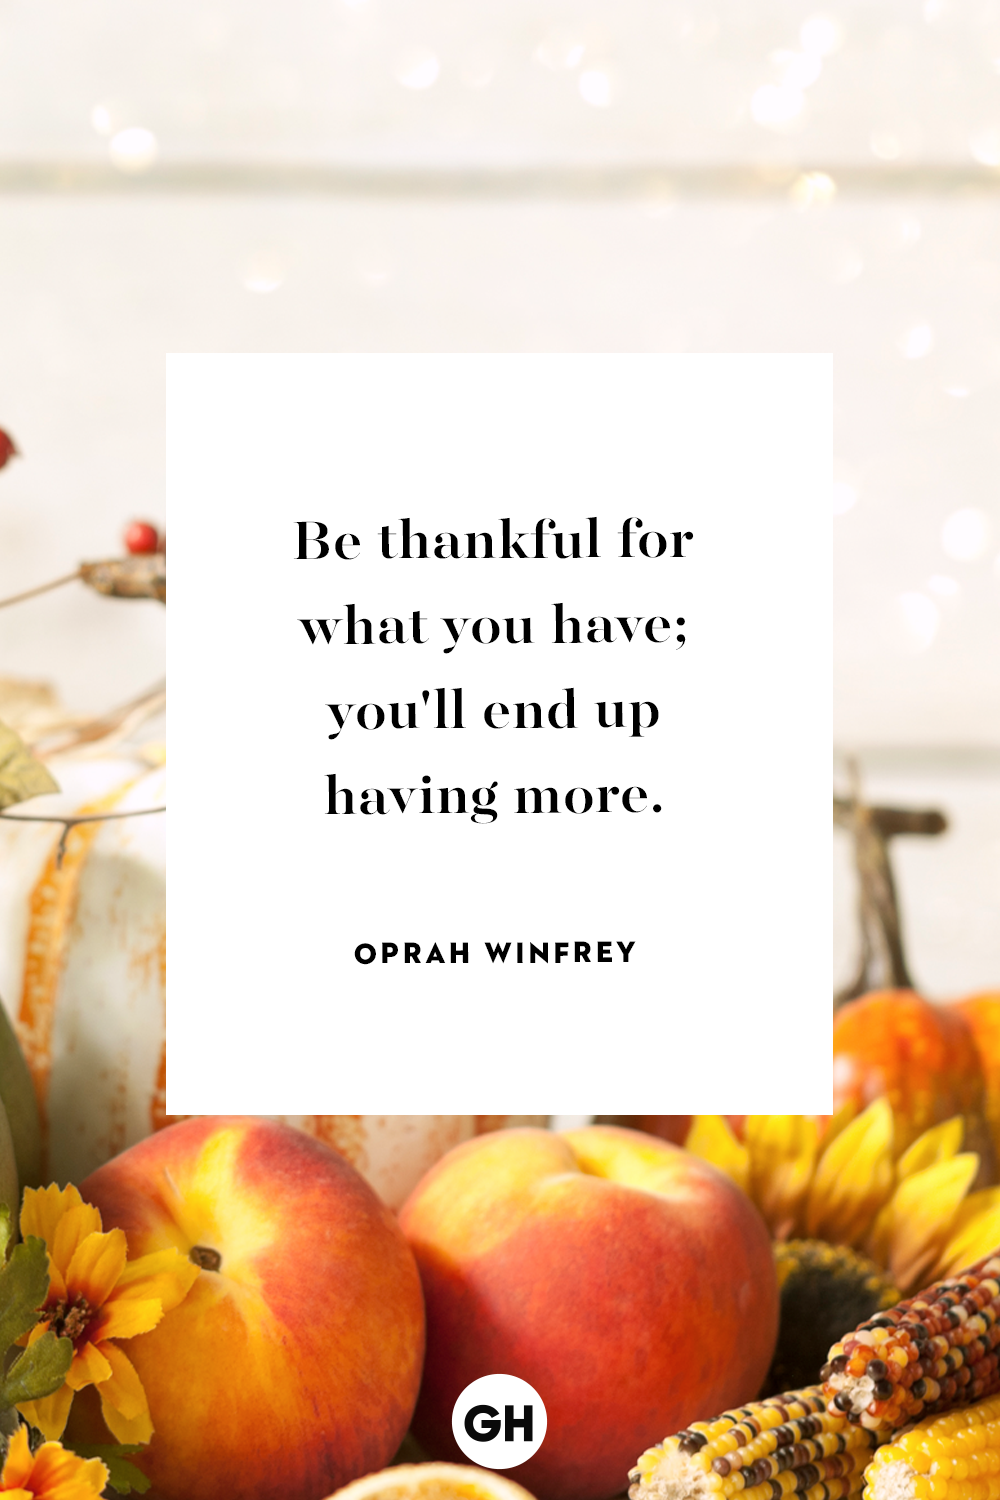 32 Best Thanksgiving Quotes - Inspirational and Funny Quotes ...